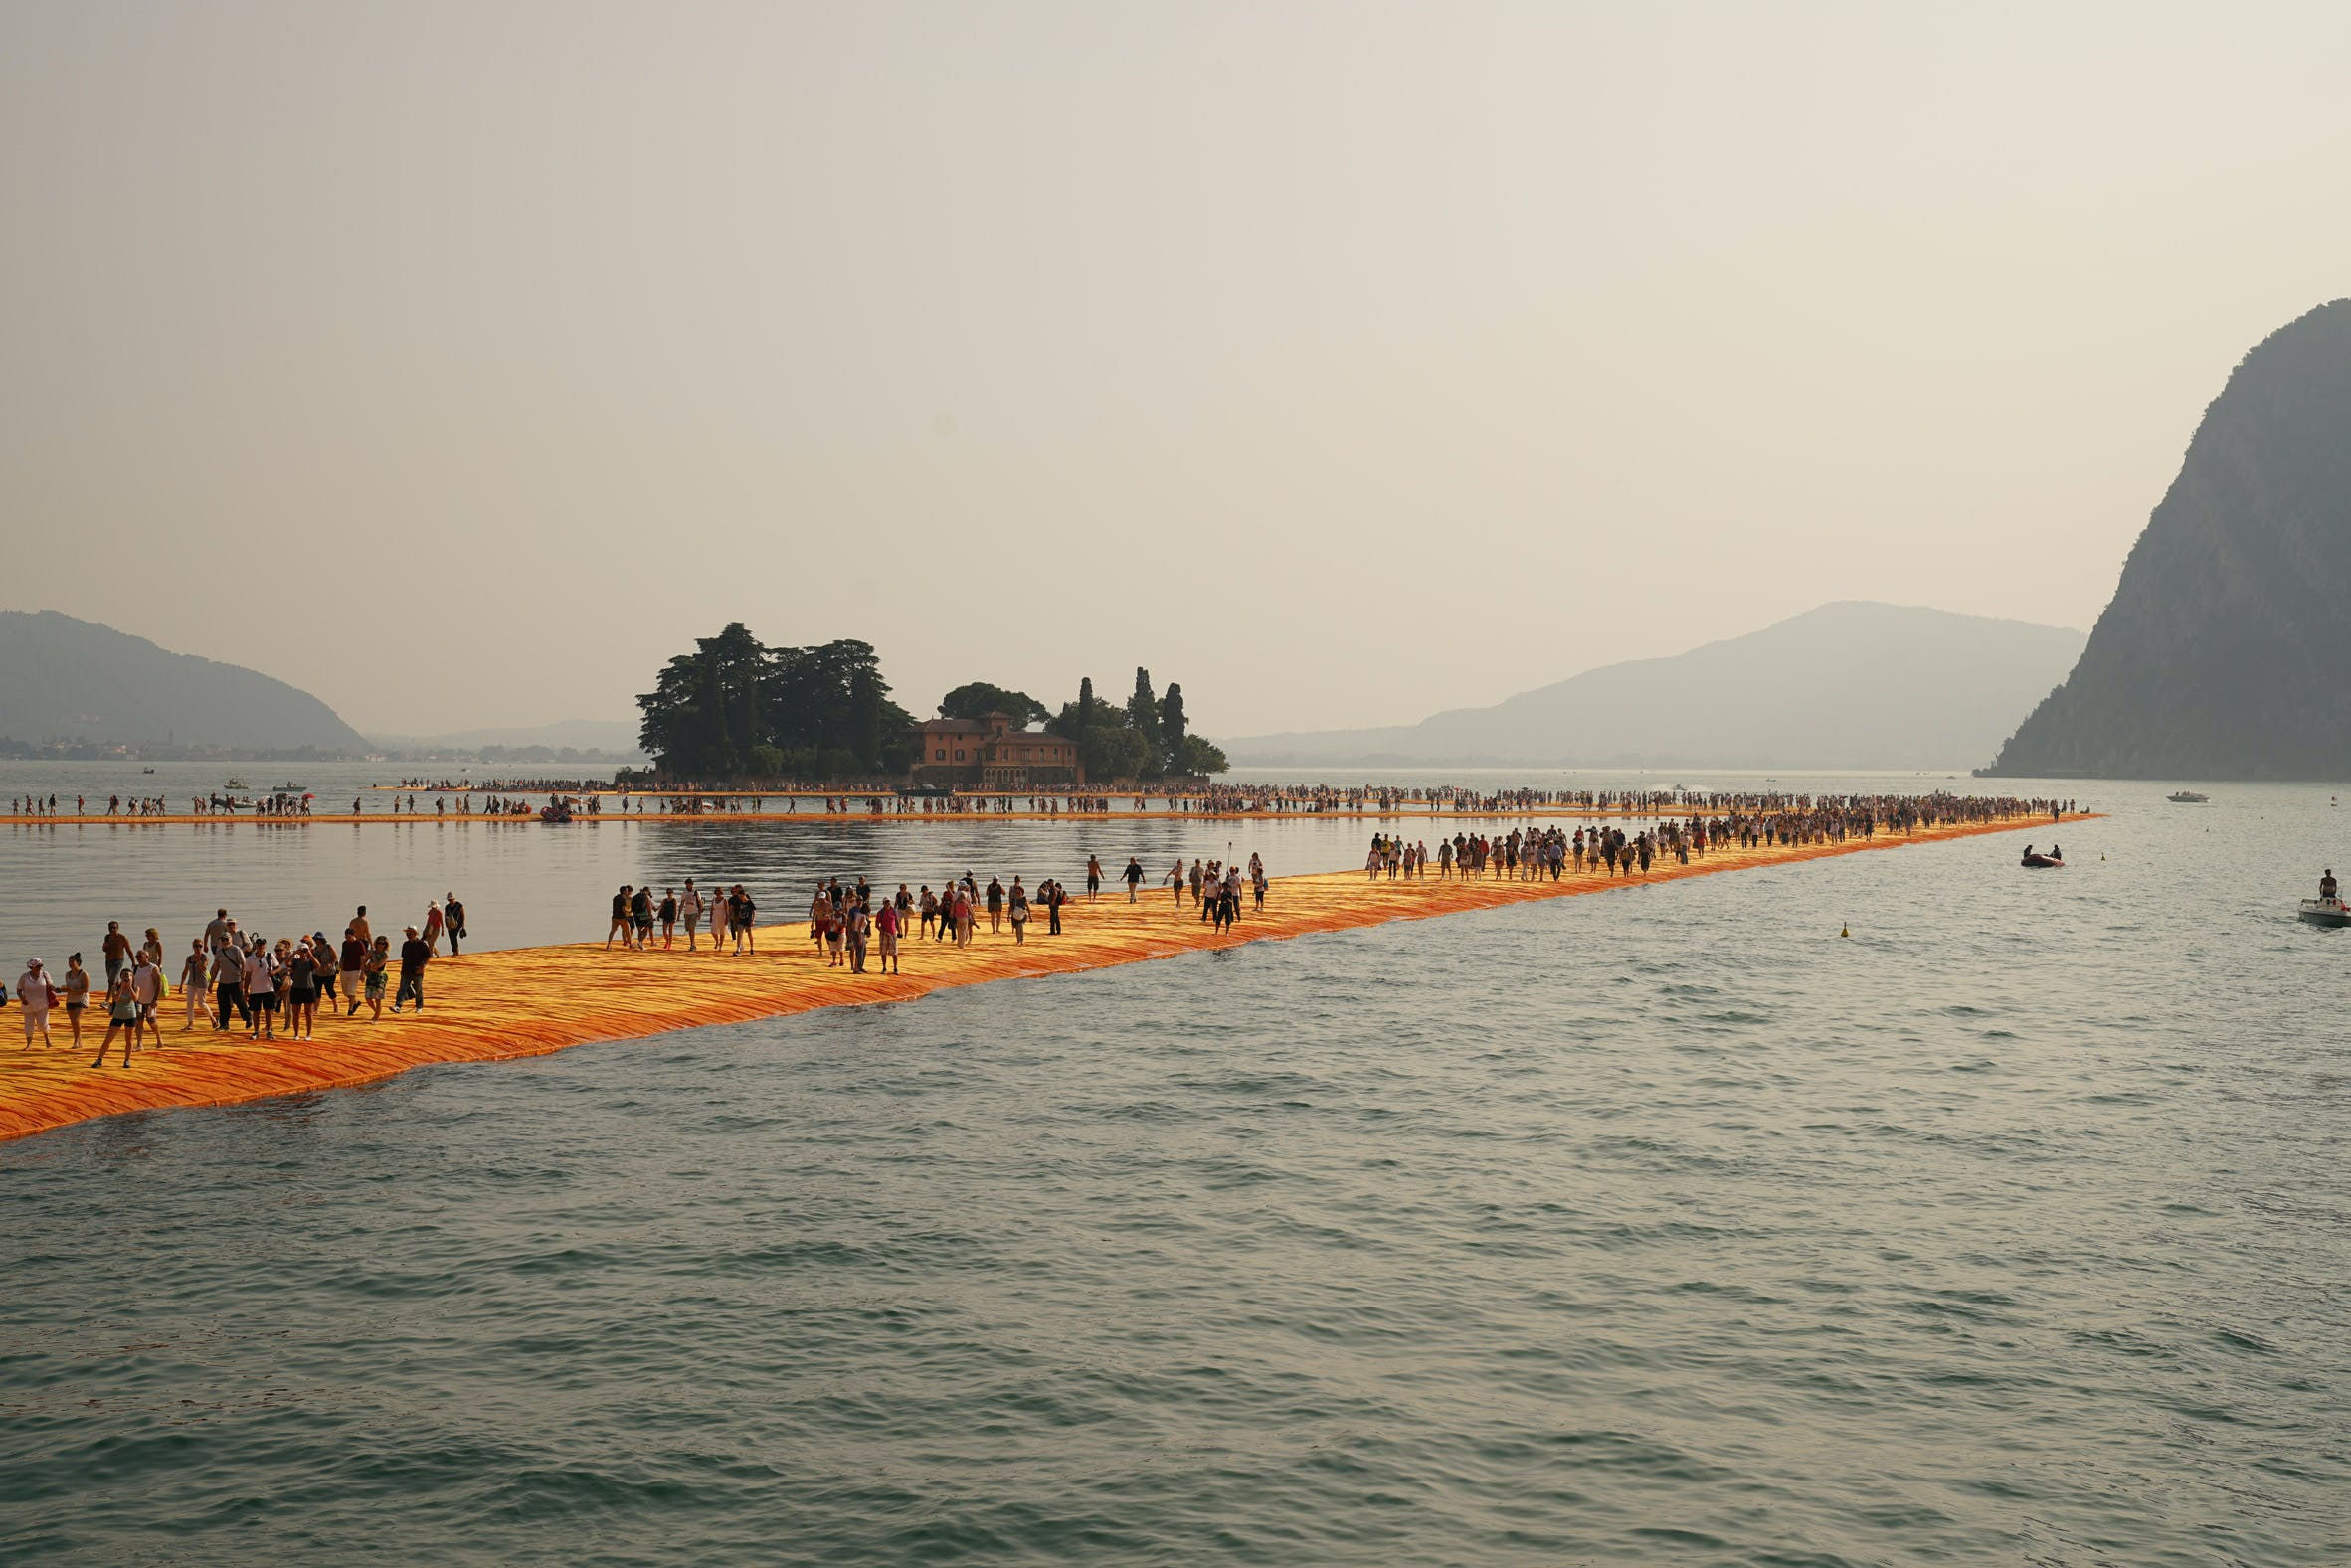 The Floating Piers, Lake Iseo, Italy, 2016.